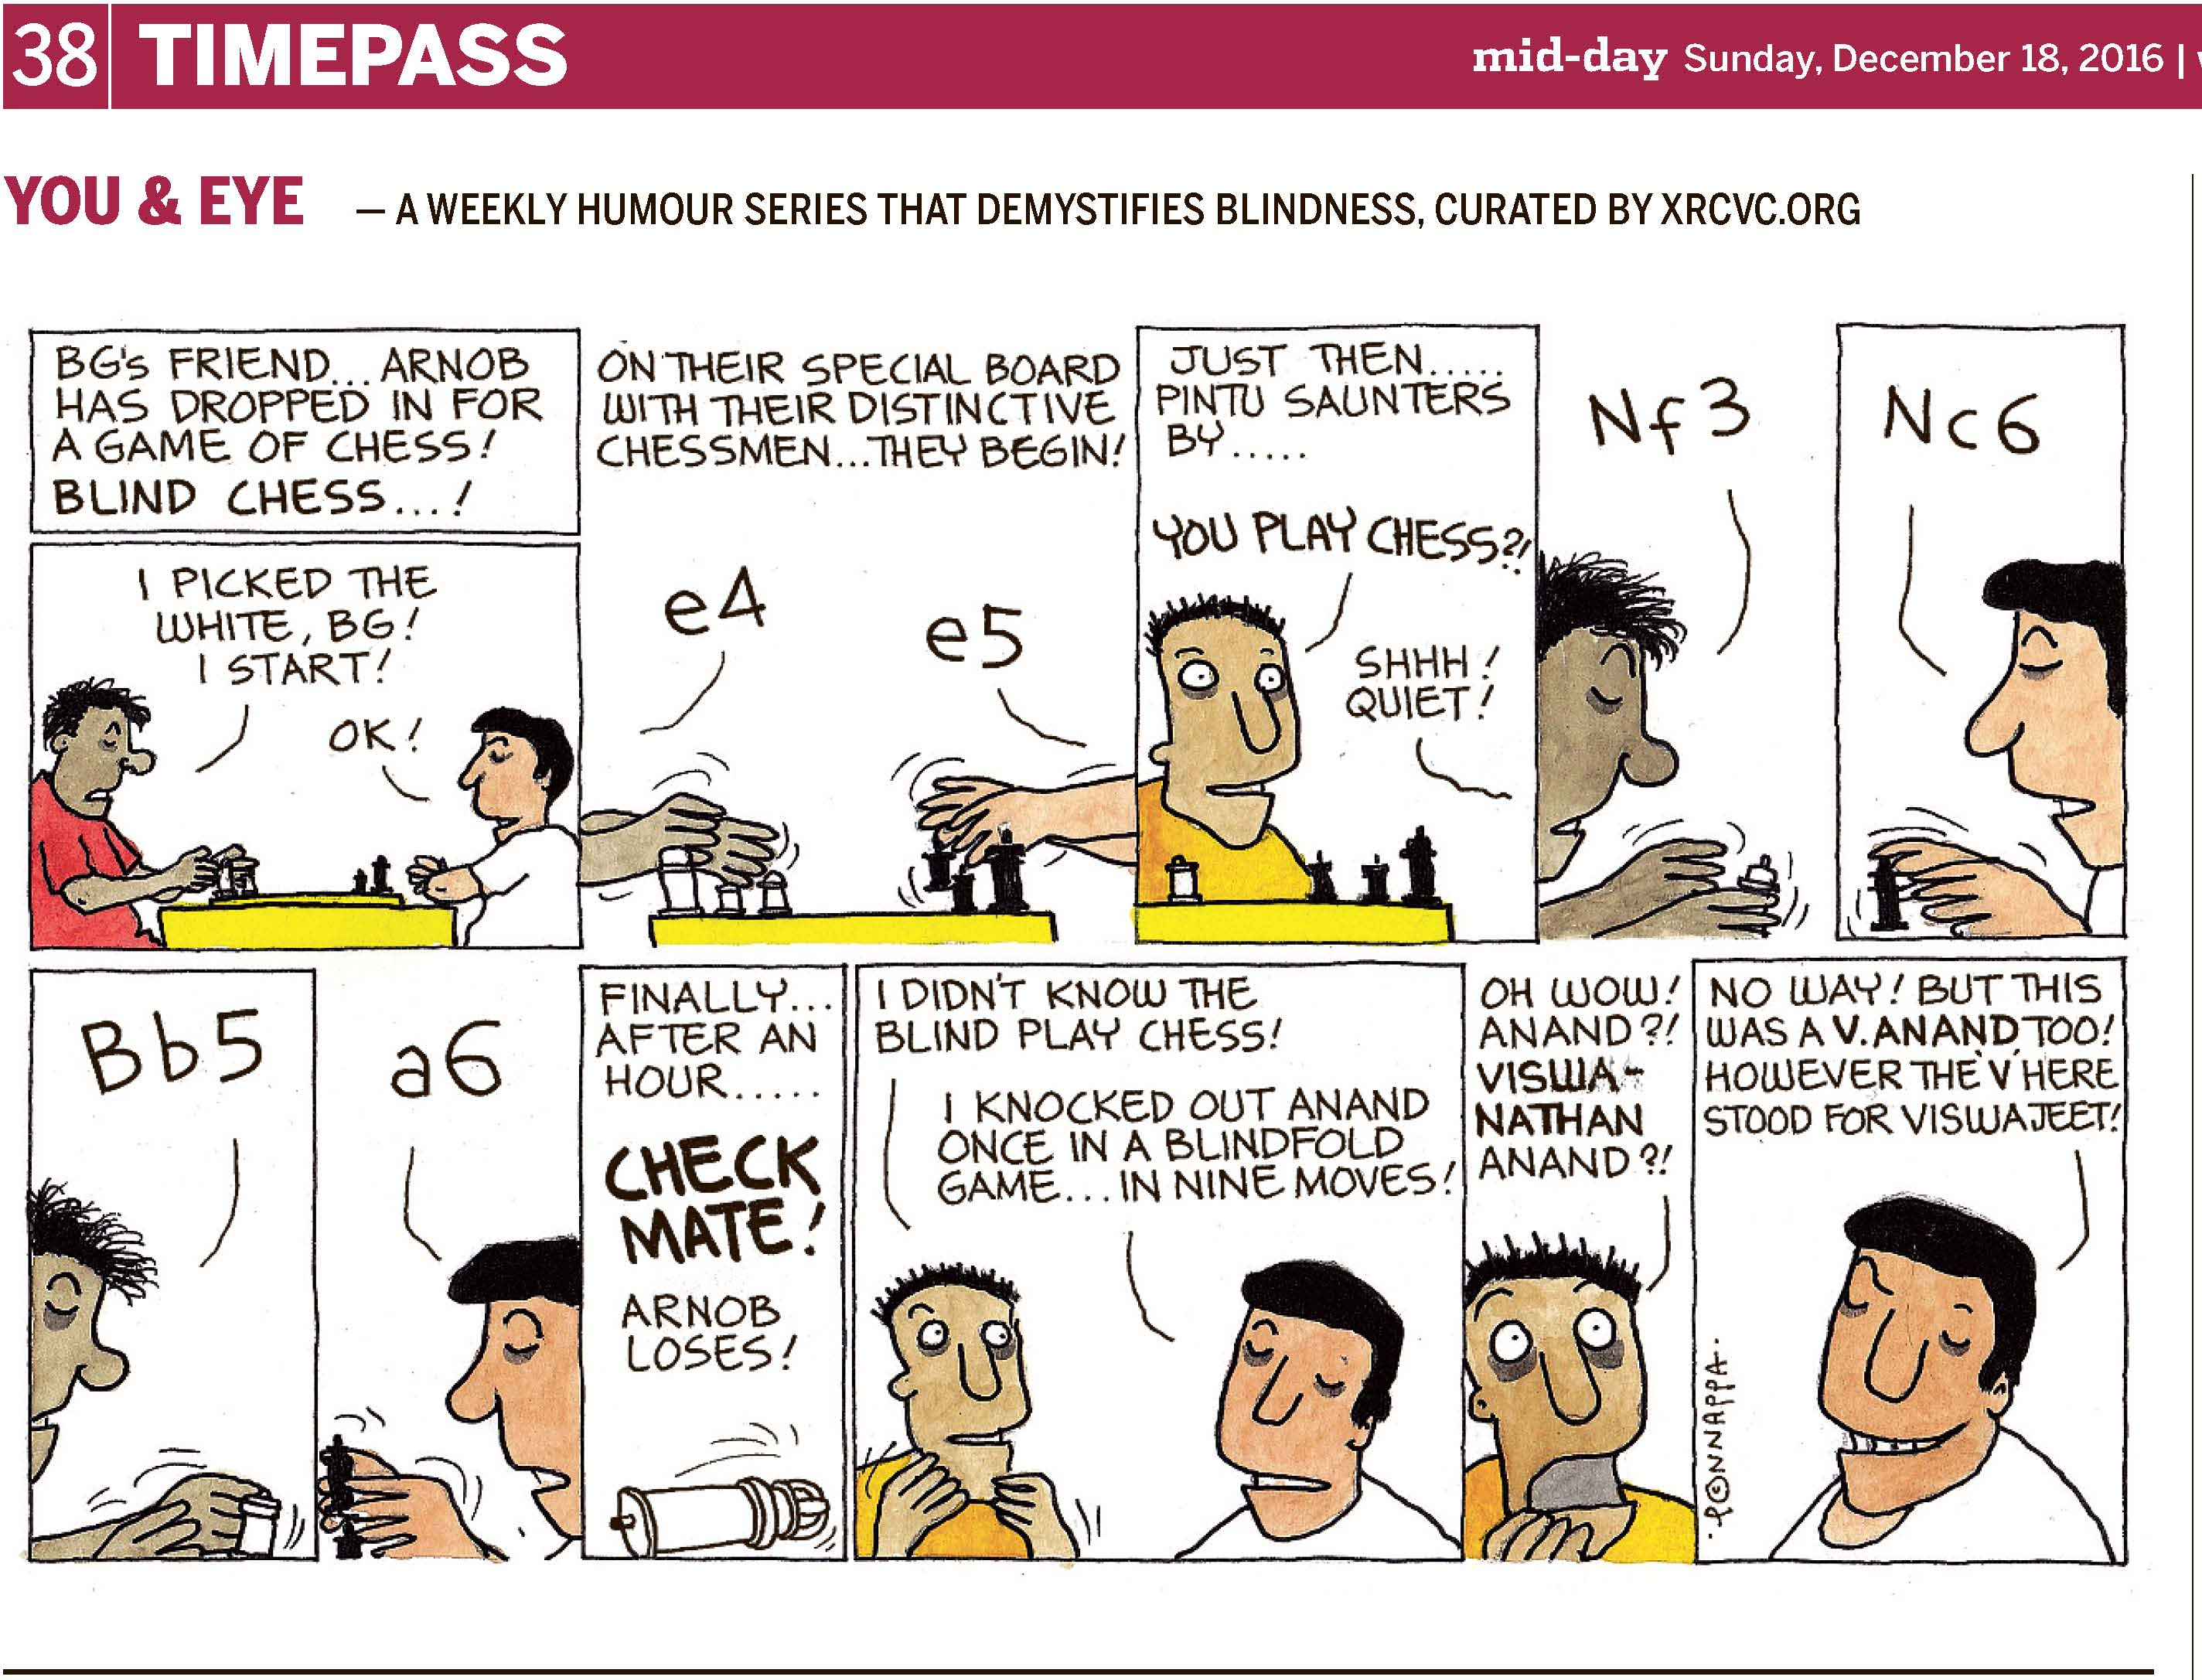 (top-left) 38 | TIMEPASS (top-right) mid-day Sunday, December 18, 2016 | YOU & EYE – A WEEKLY HUMOUR SERIES THAT DEMYSTIFIES BLINDNESS, CURATED BY XRCVC.ORG Image description: A cartoon strip with 11 frames… Frame 1: